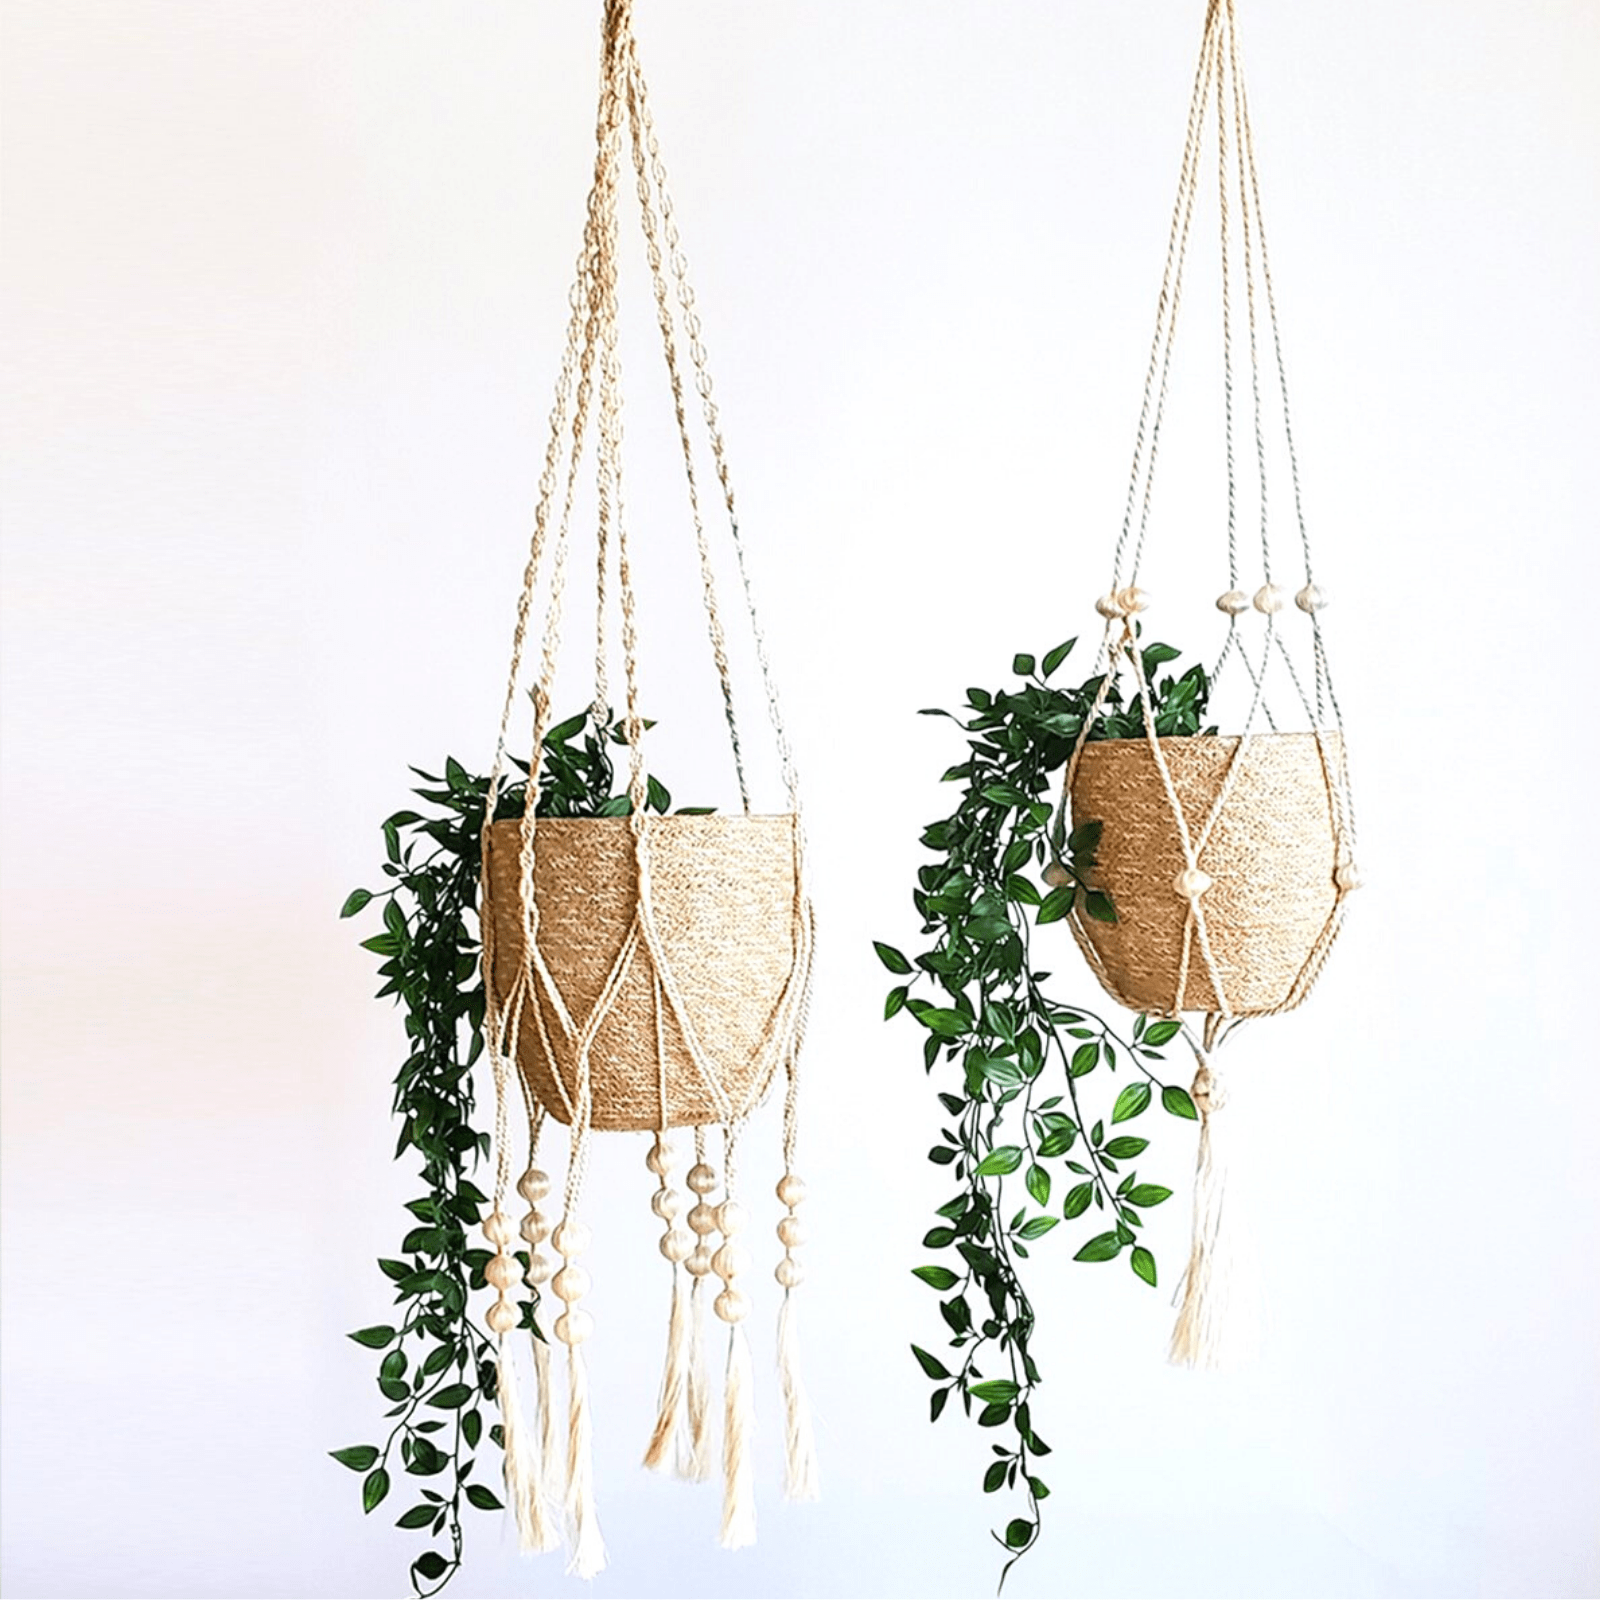 Hanging plants on white background